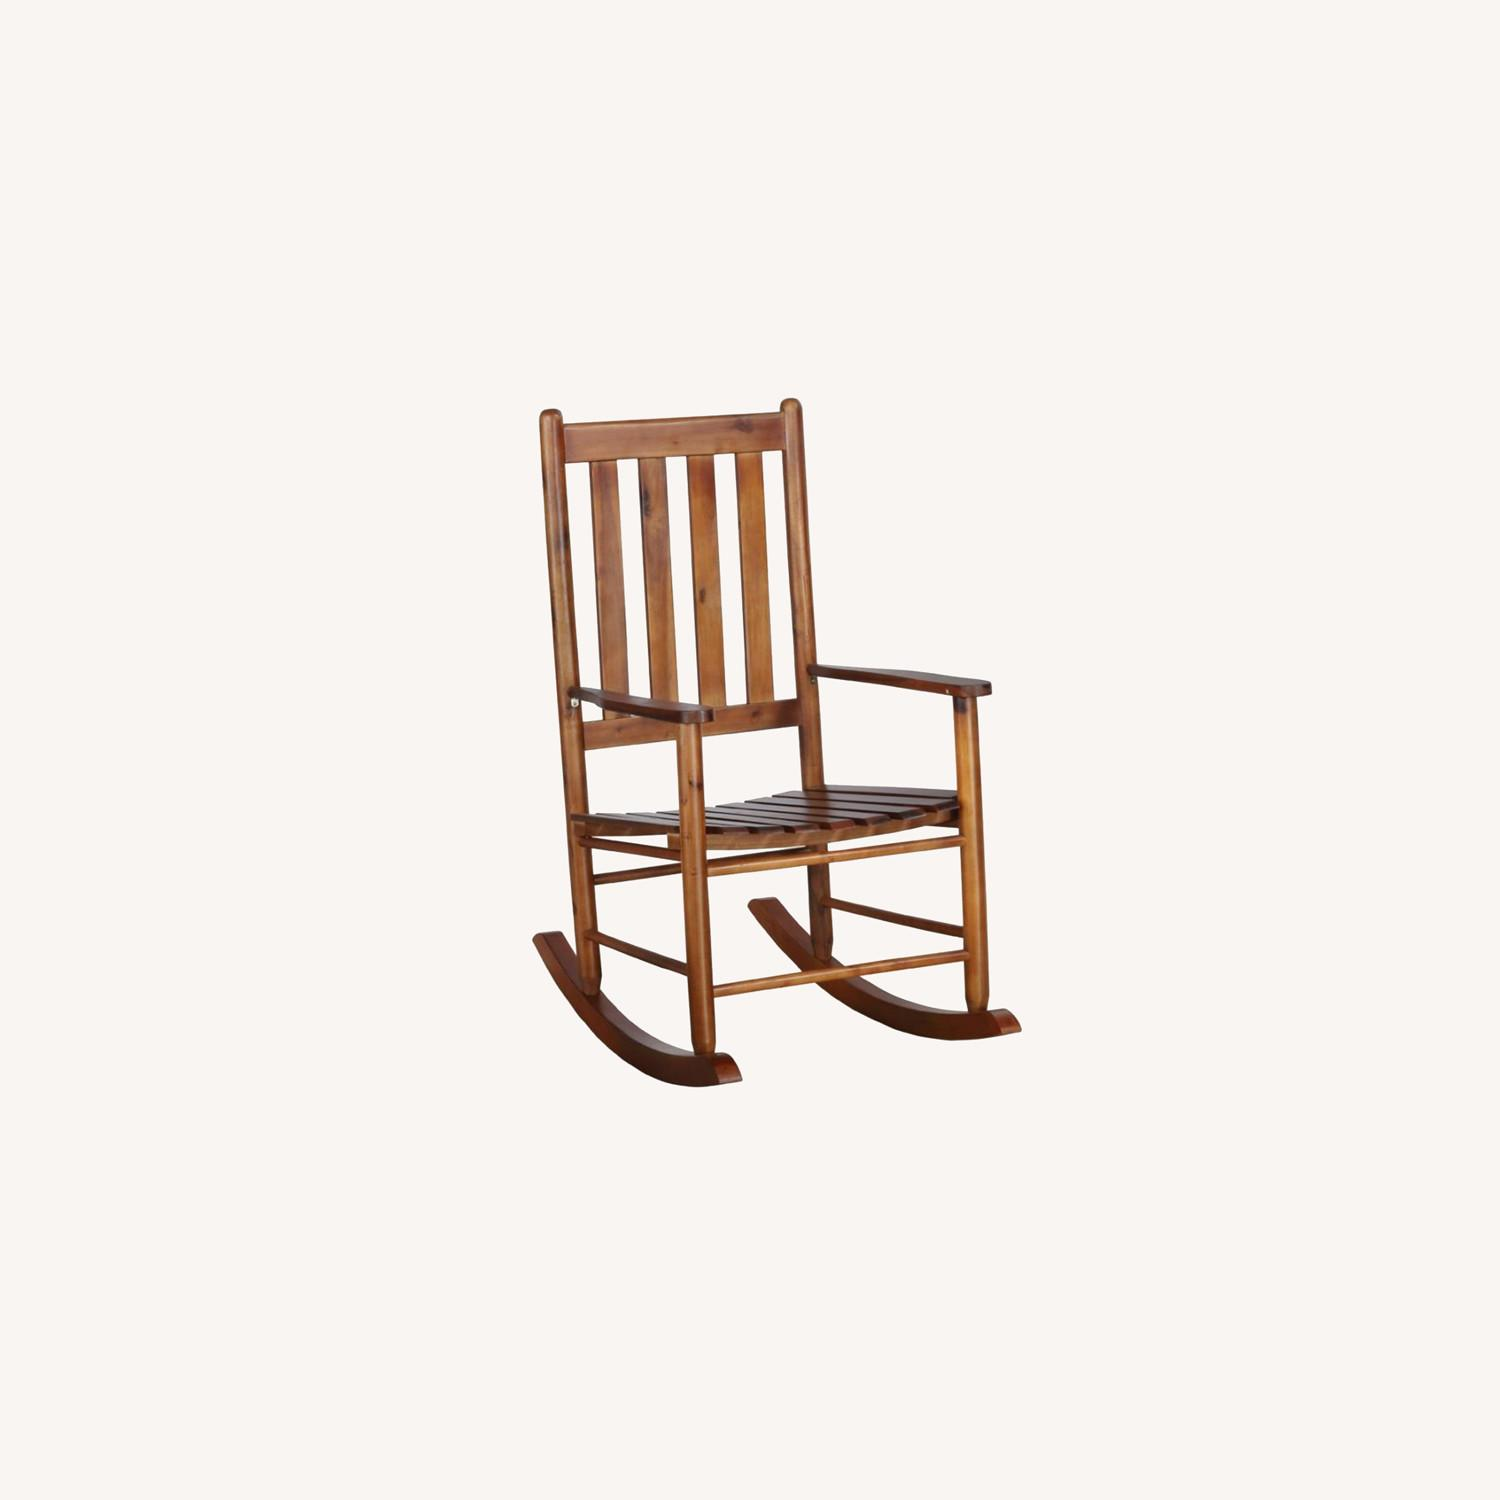 Rocking Chair In Golden Brown Acacia Wood Finish - image-3